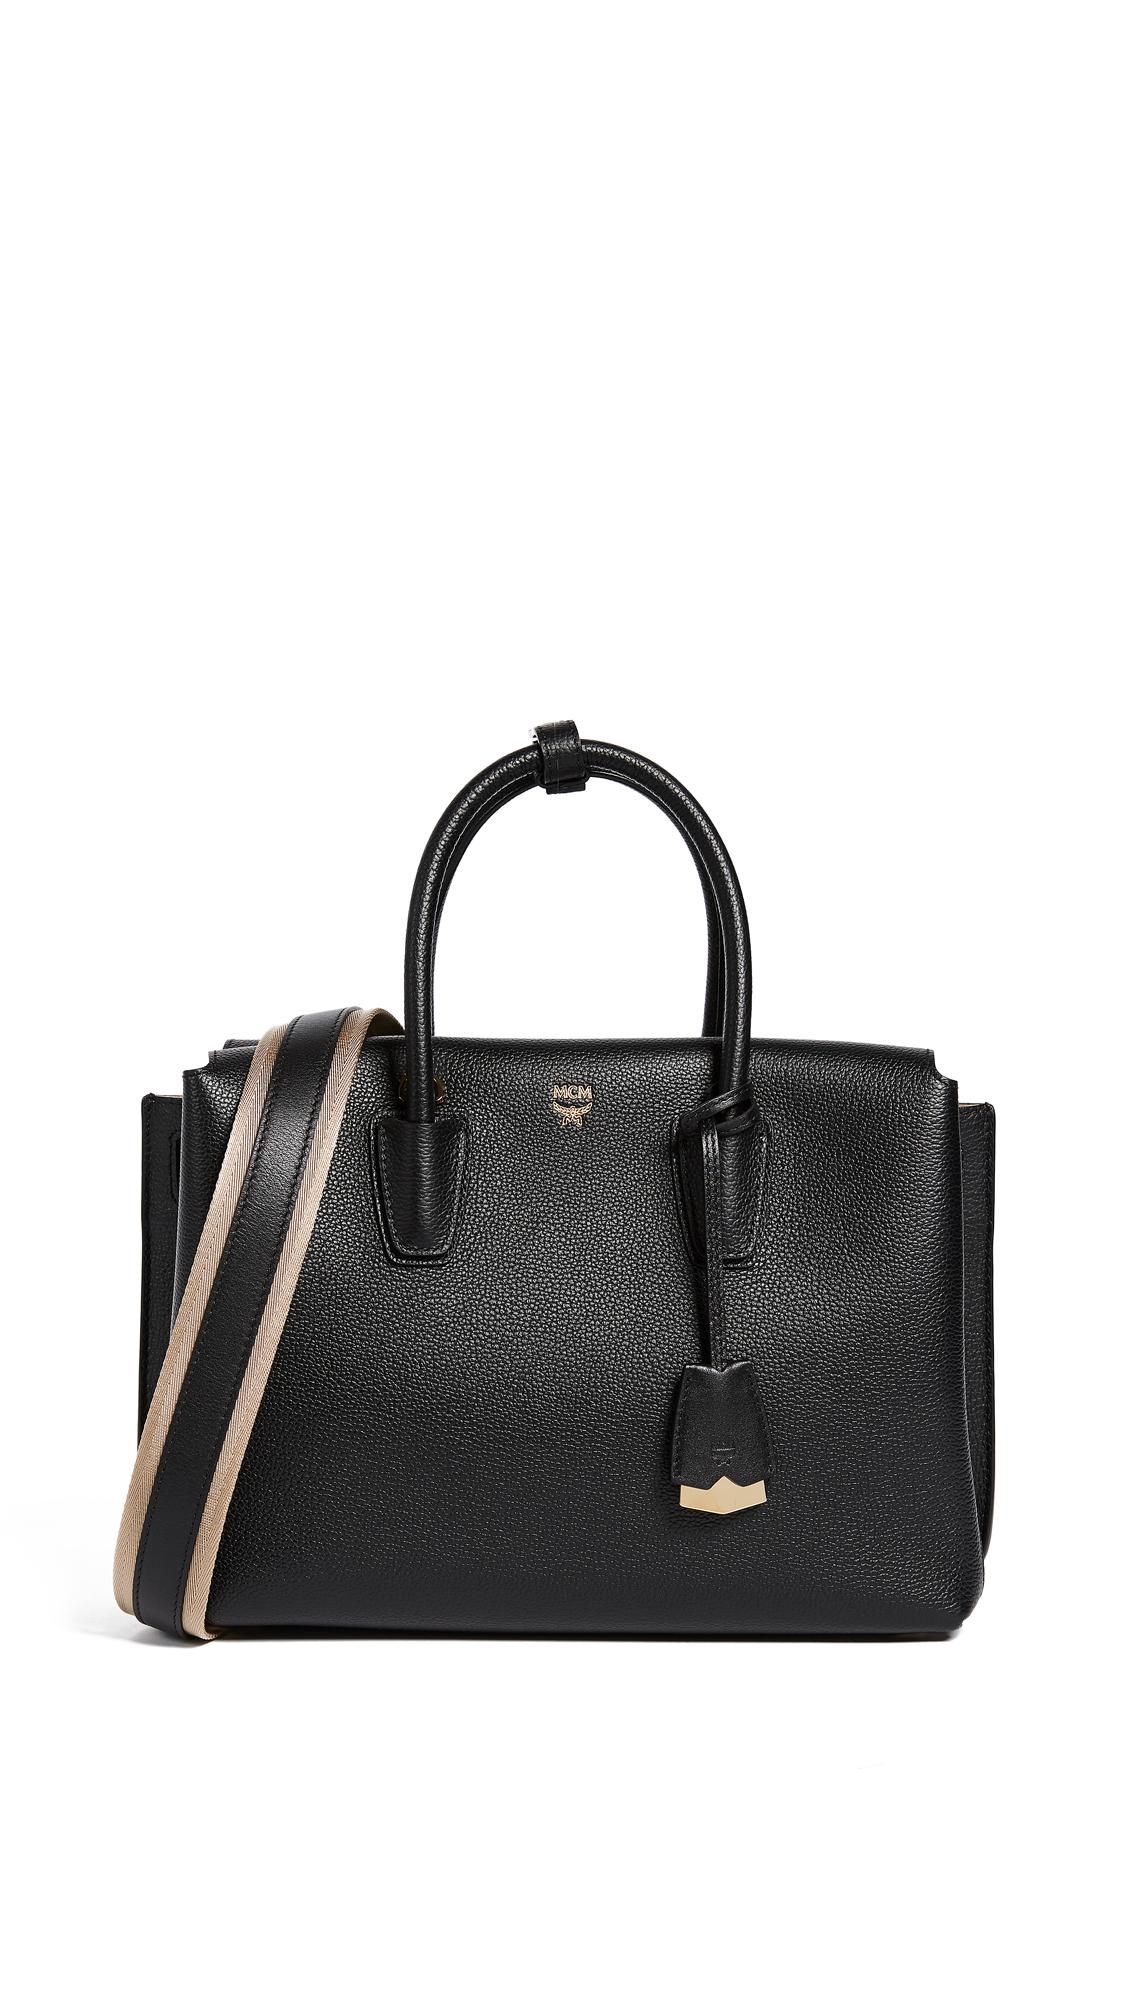 MCM Leather Milla Tote in Black